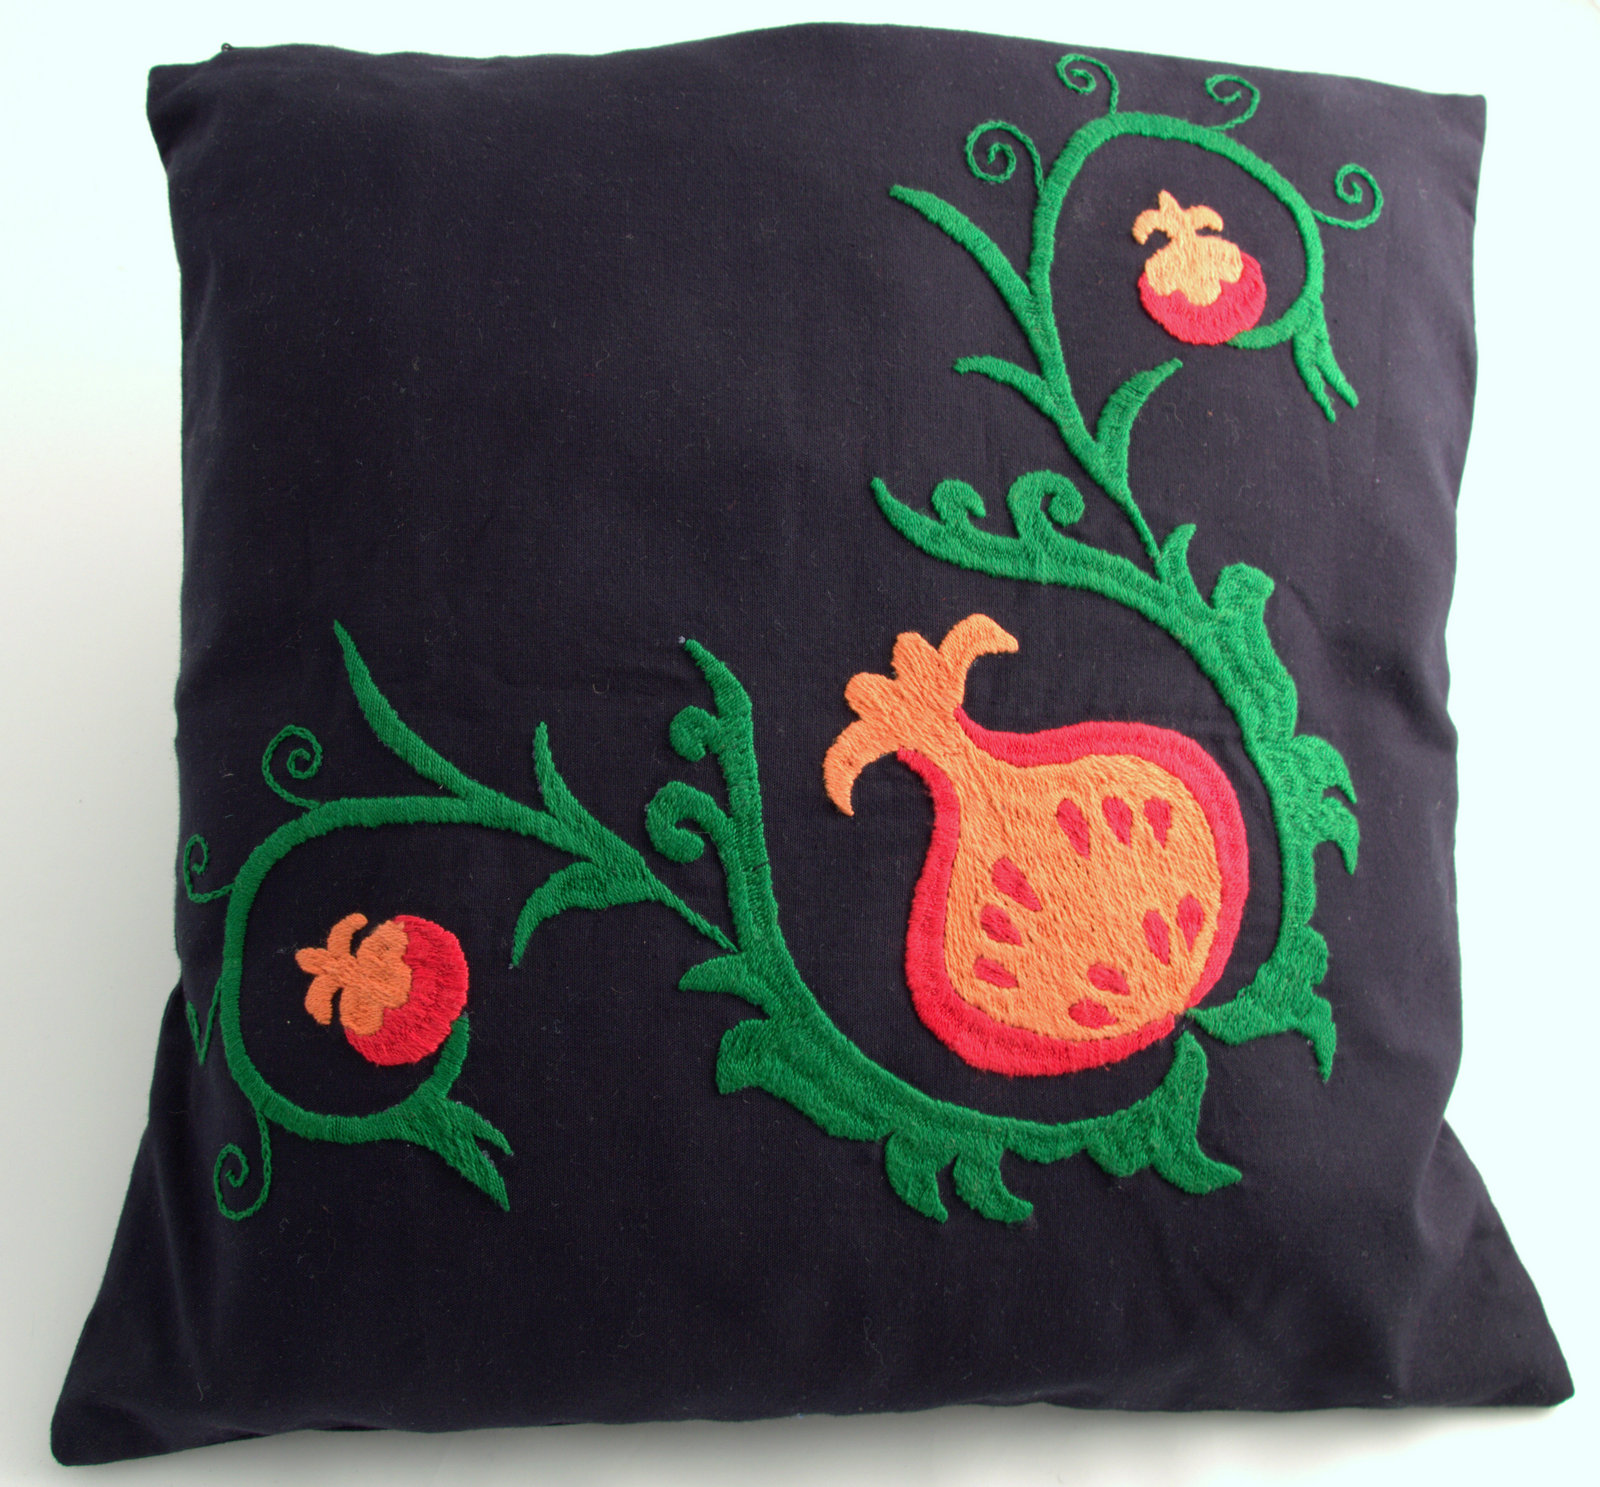 Gundara Is Offering You Here A Beautiful Cushion Cover With A